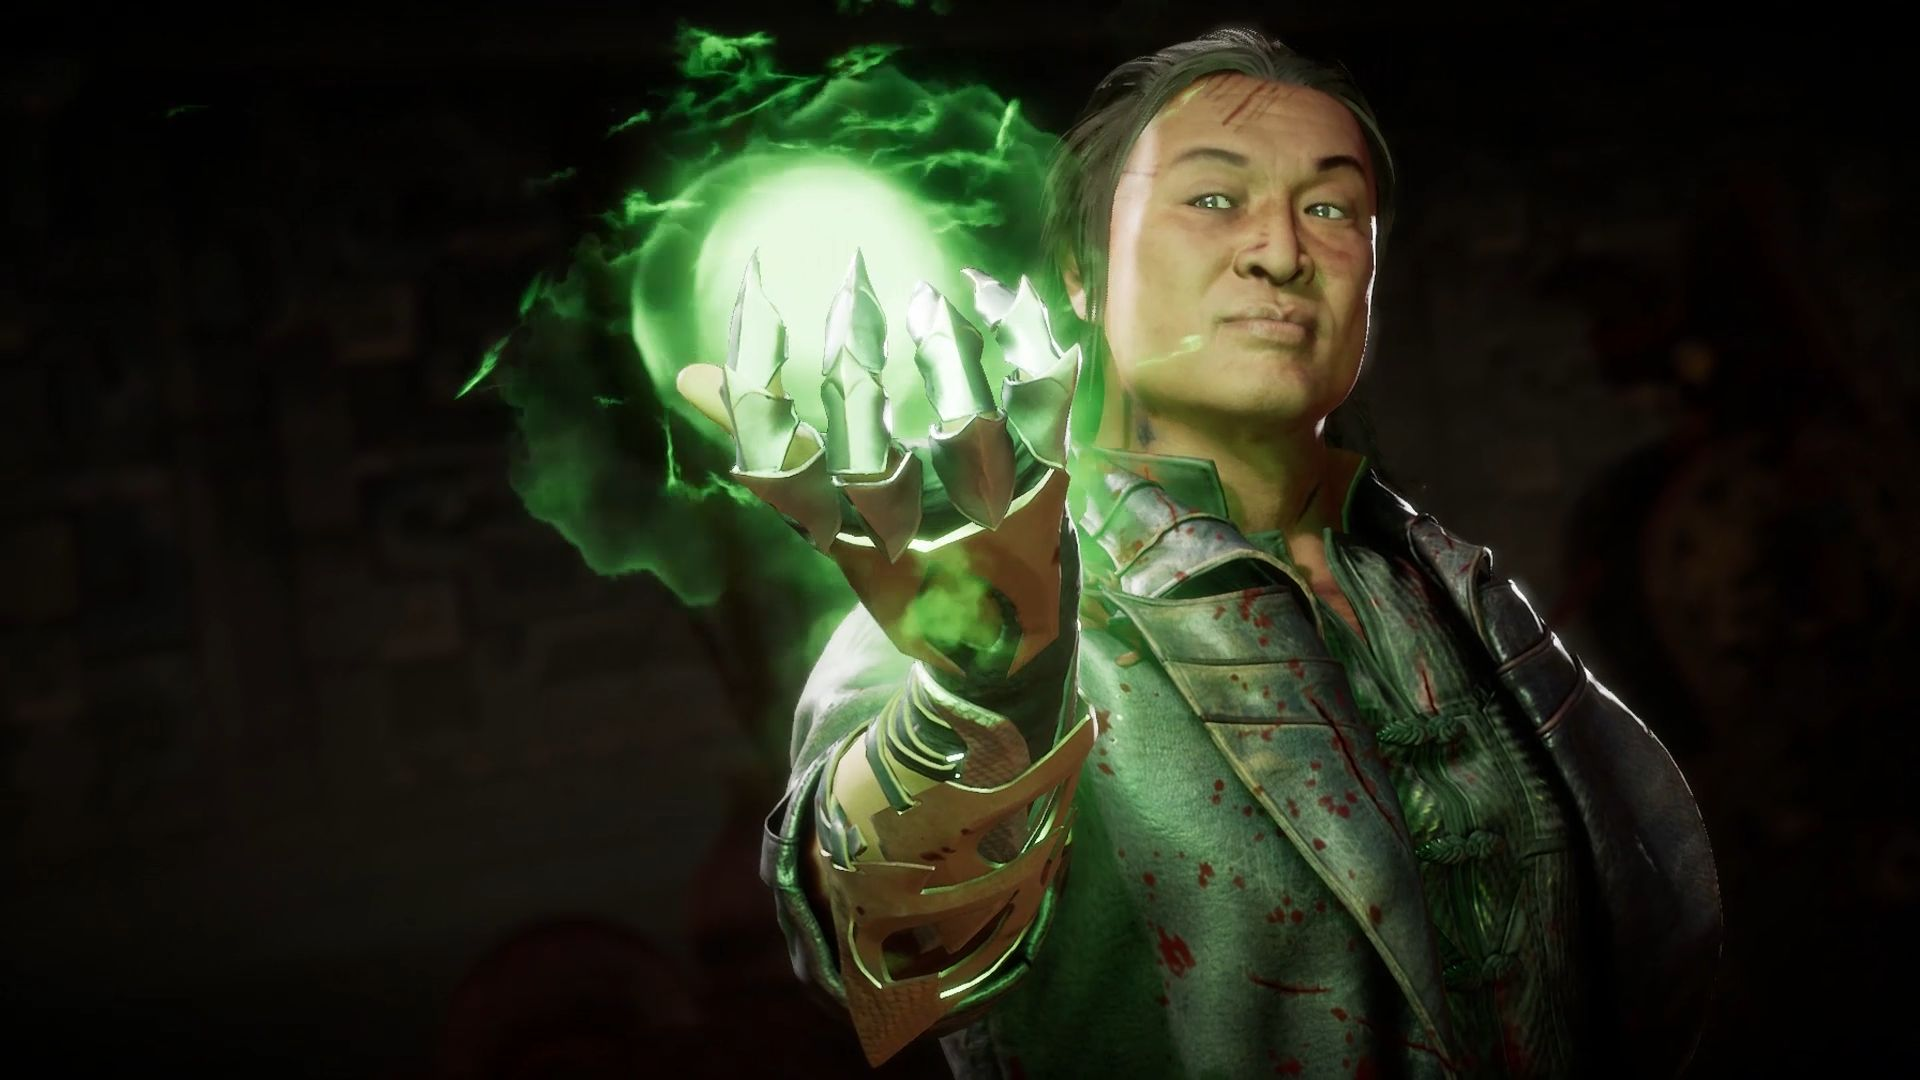 Mortal Kombat 11's Remaining DLC Characters Will Be Unveiled August 21st